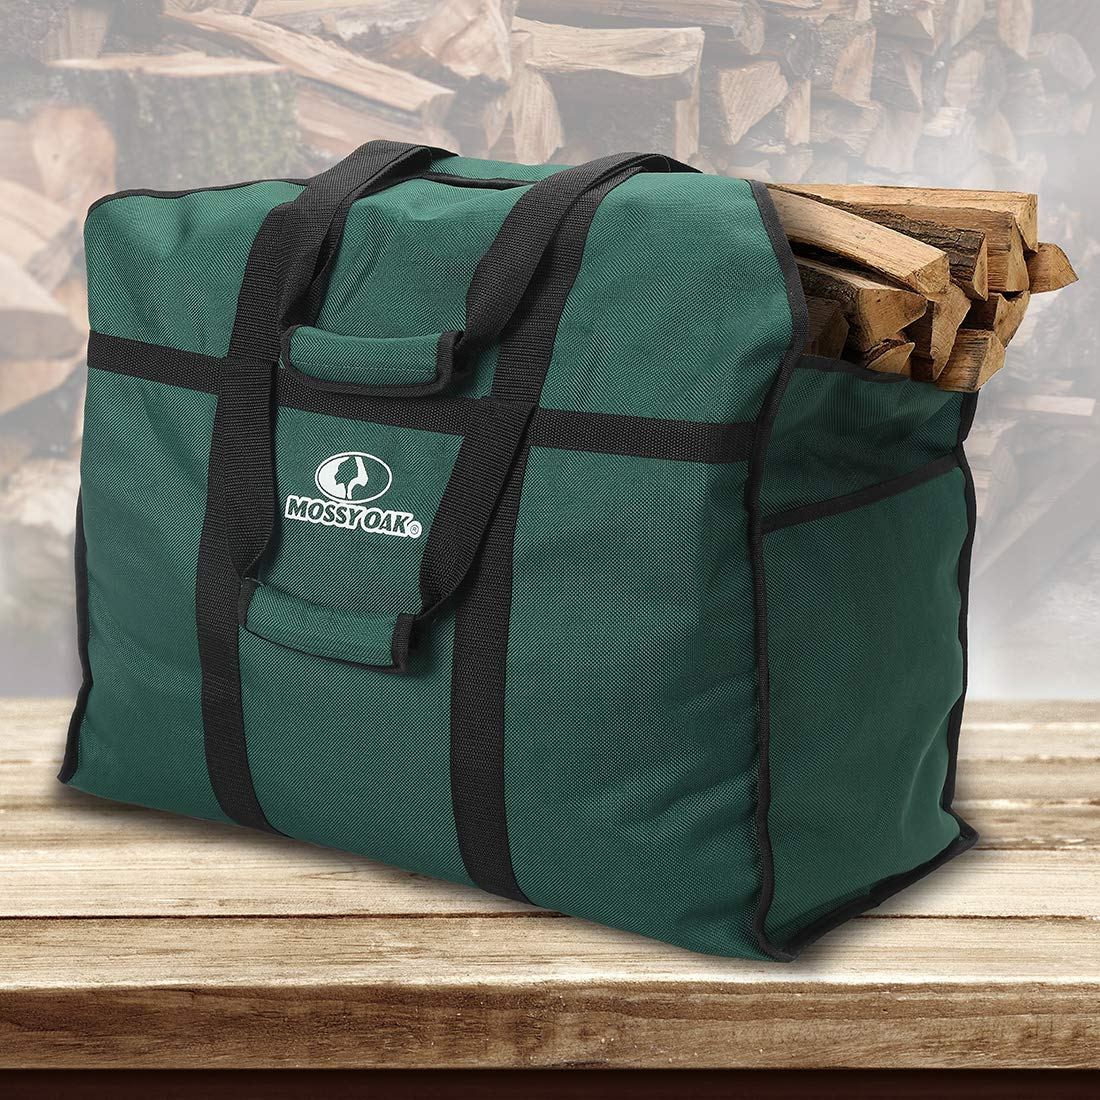 MOSSY OAK Firewood Log Carrier and Log Tote Bag for Fireplaces & Wood Stoves(Green) by Mossy Oak